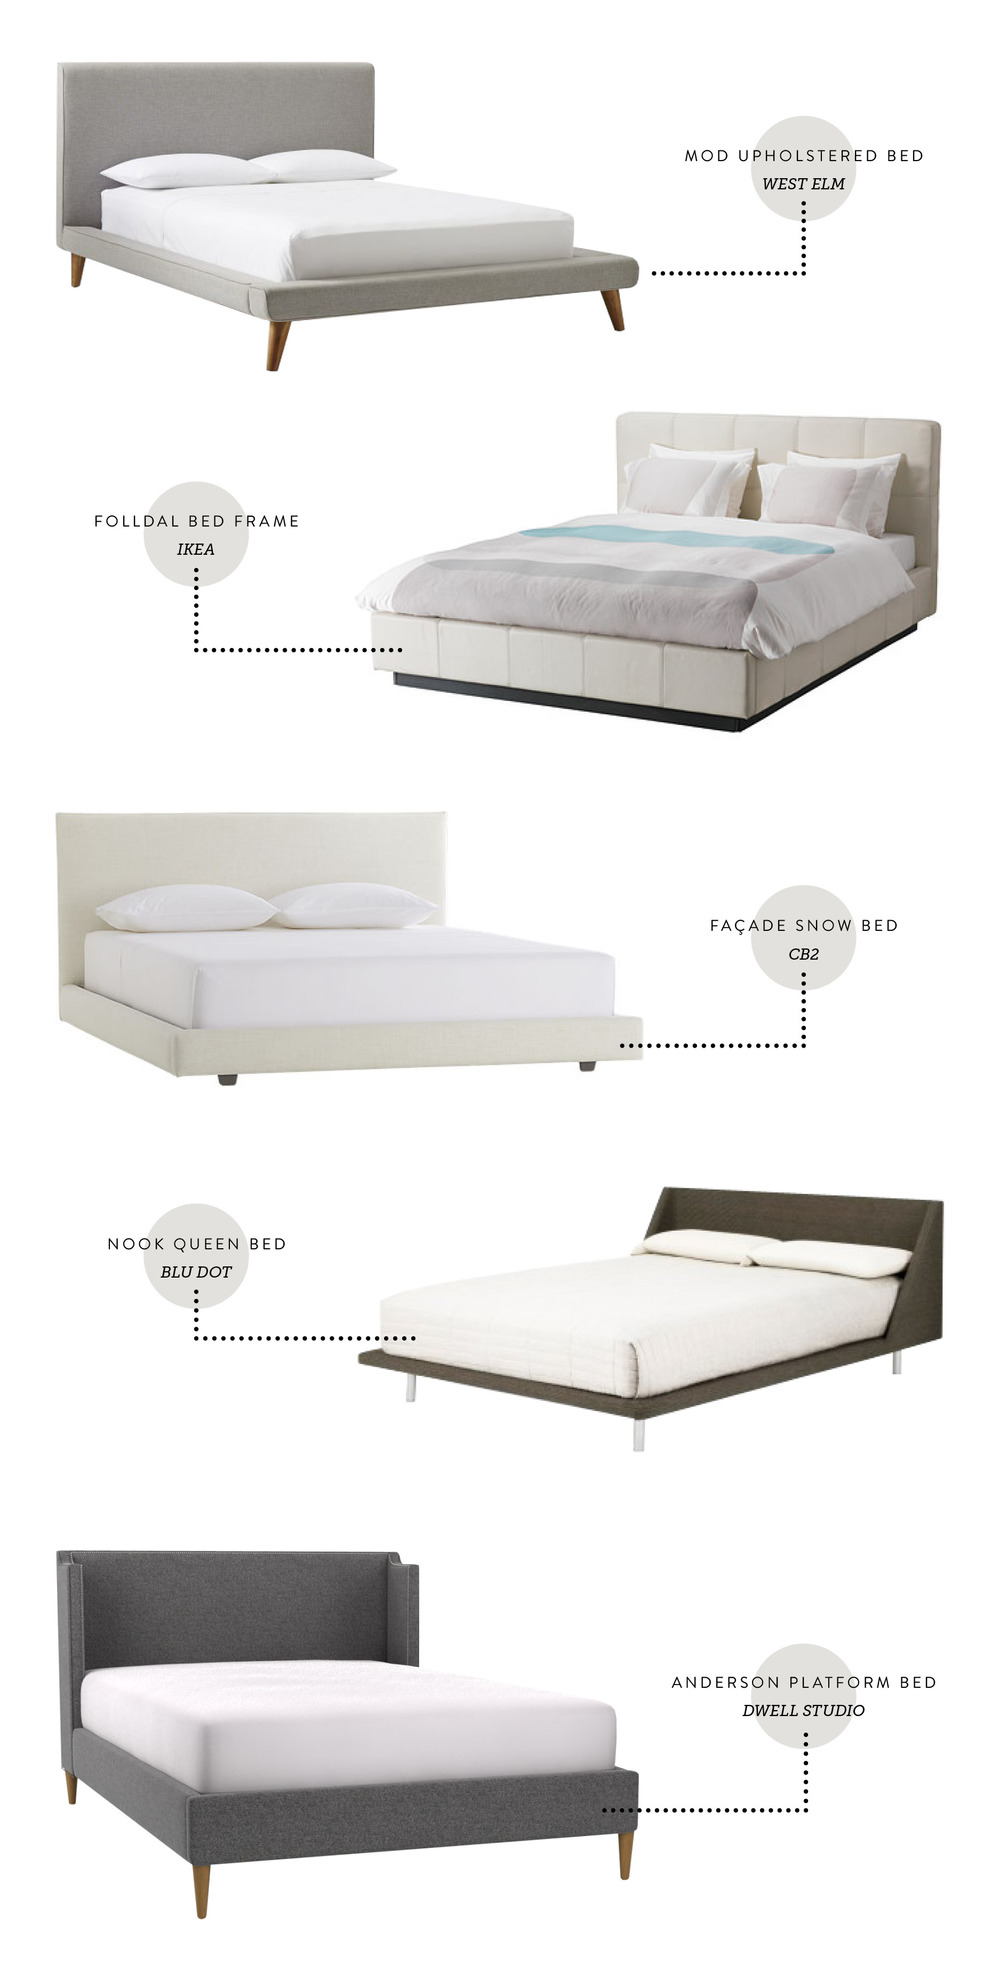 P.S.  Here is a great DIY upholstered bed made from the FJELLSE Bed Frame from IKEA.